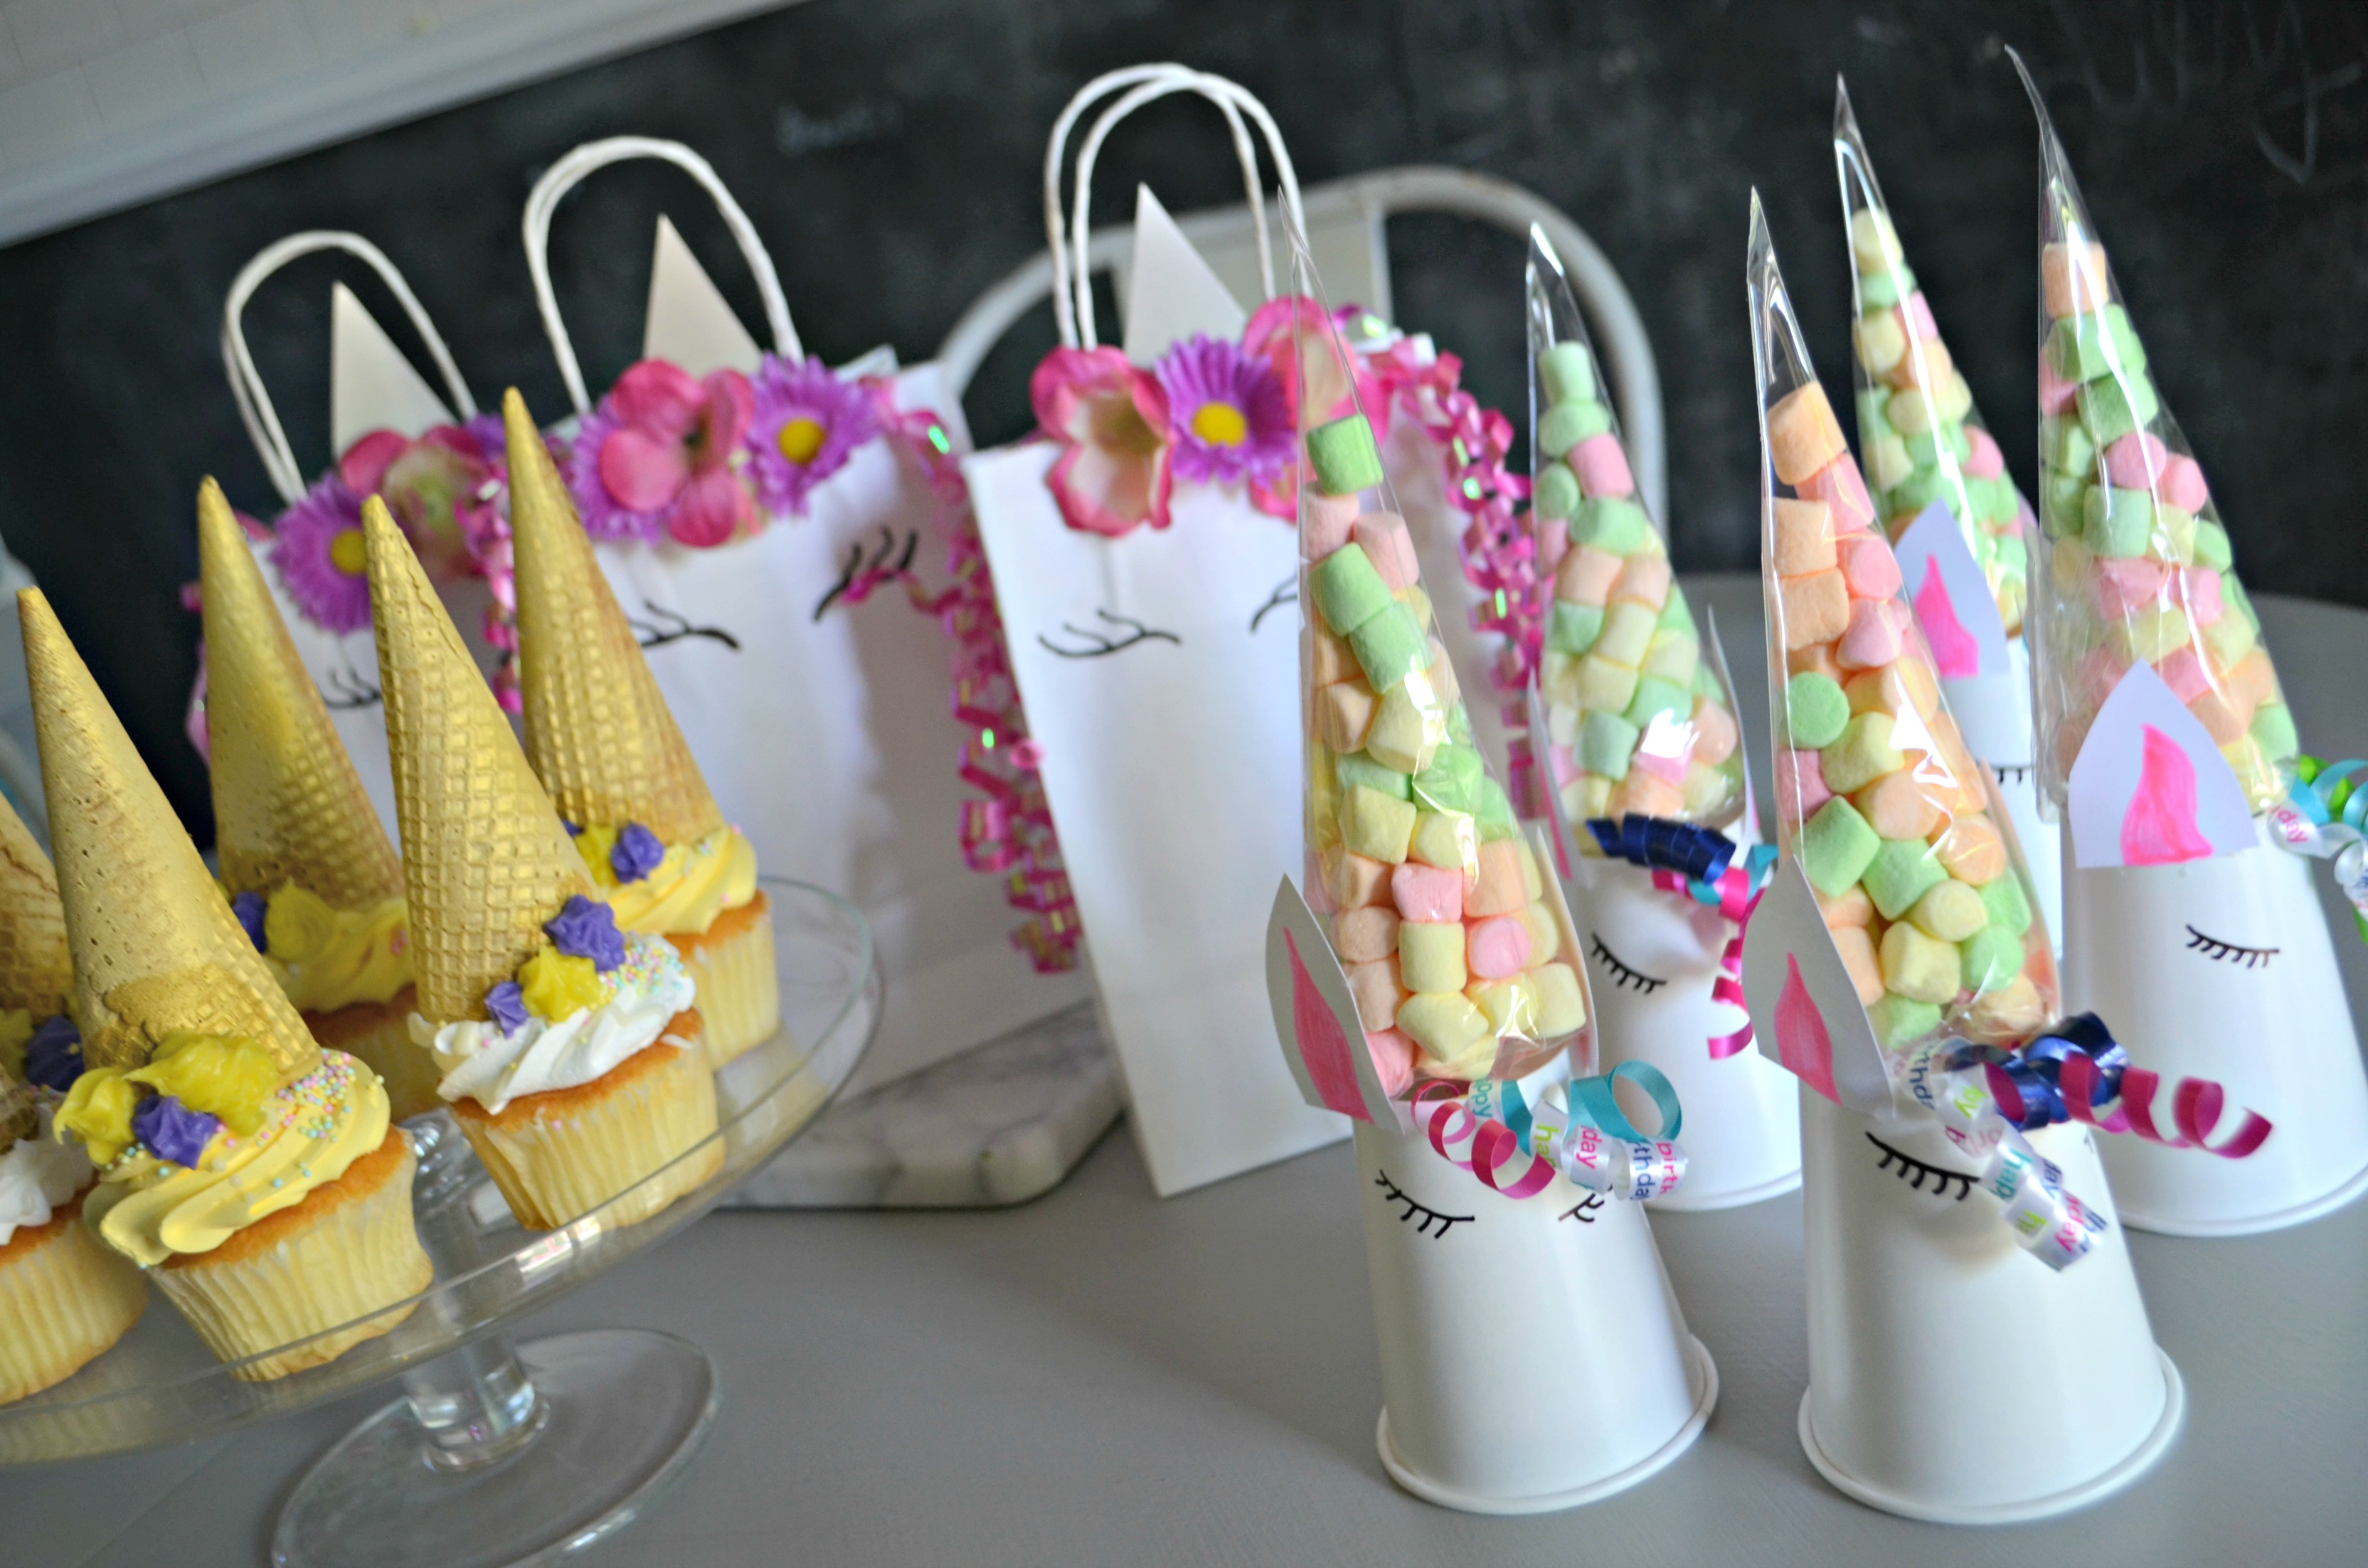 Simple Prep Is All You Need For These Easy DIY Unicorn Birthday Party Ideas